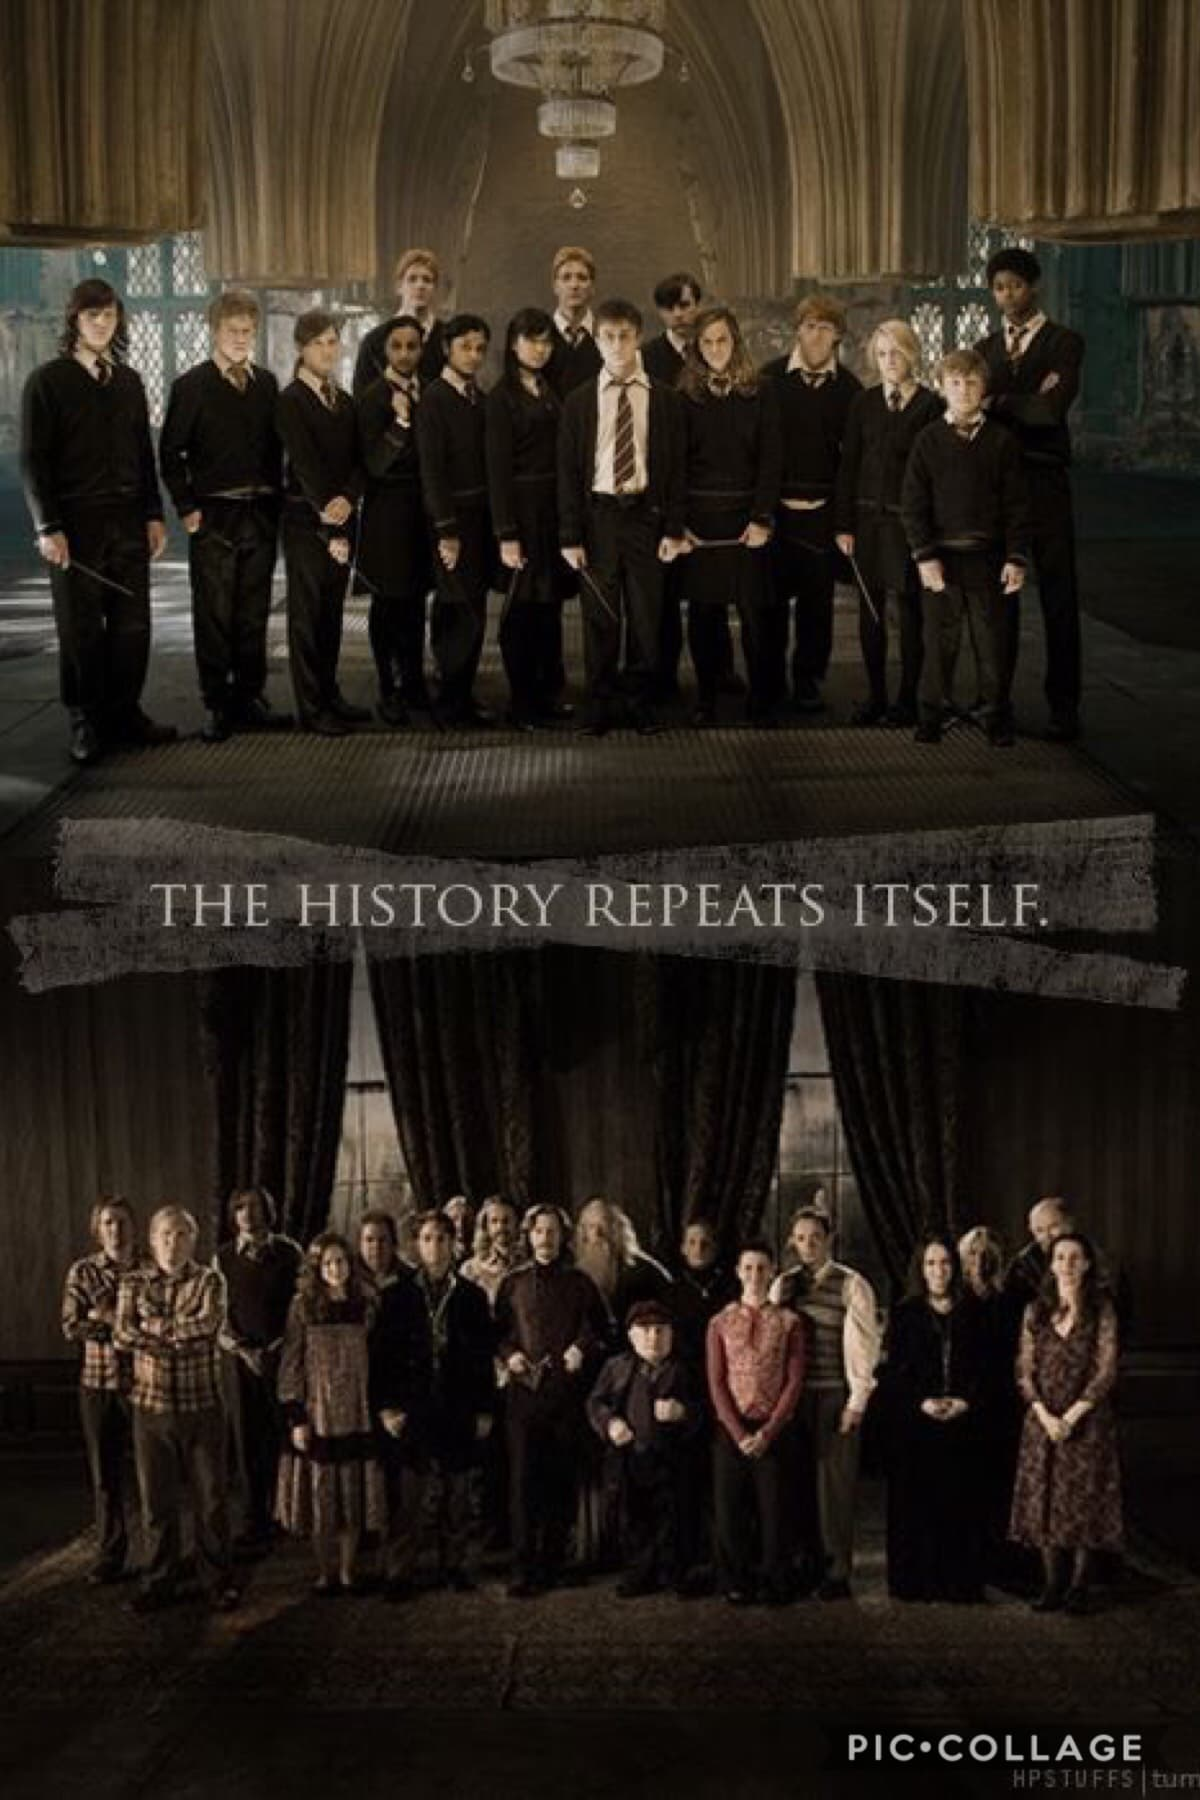 Dumbledore's army/Order of the Phoenix